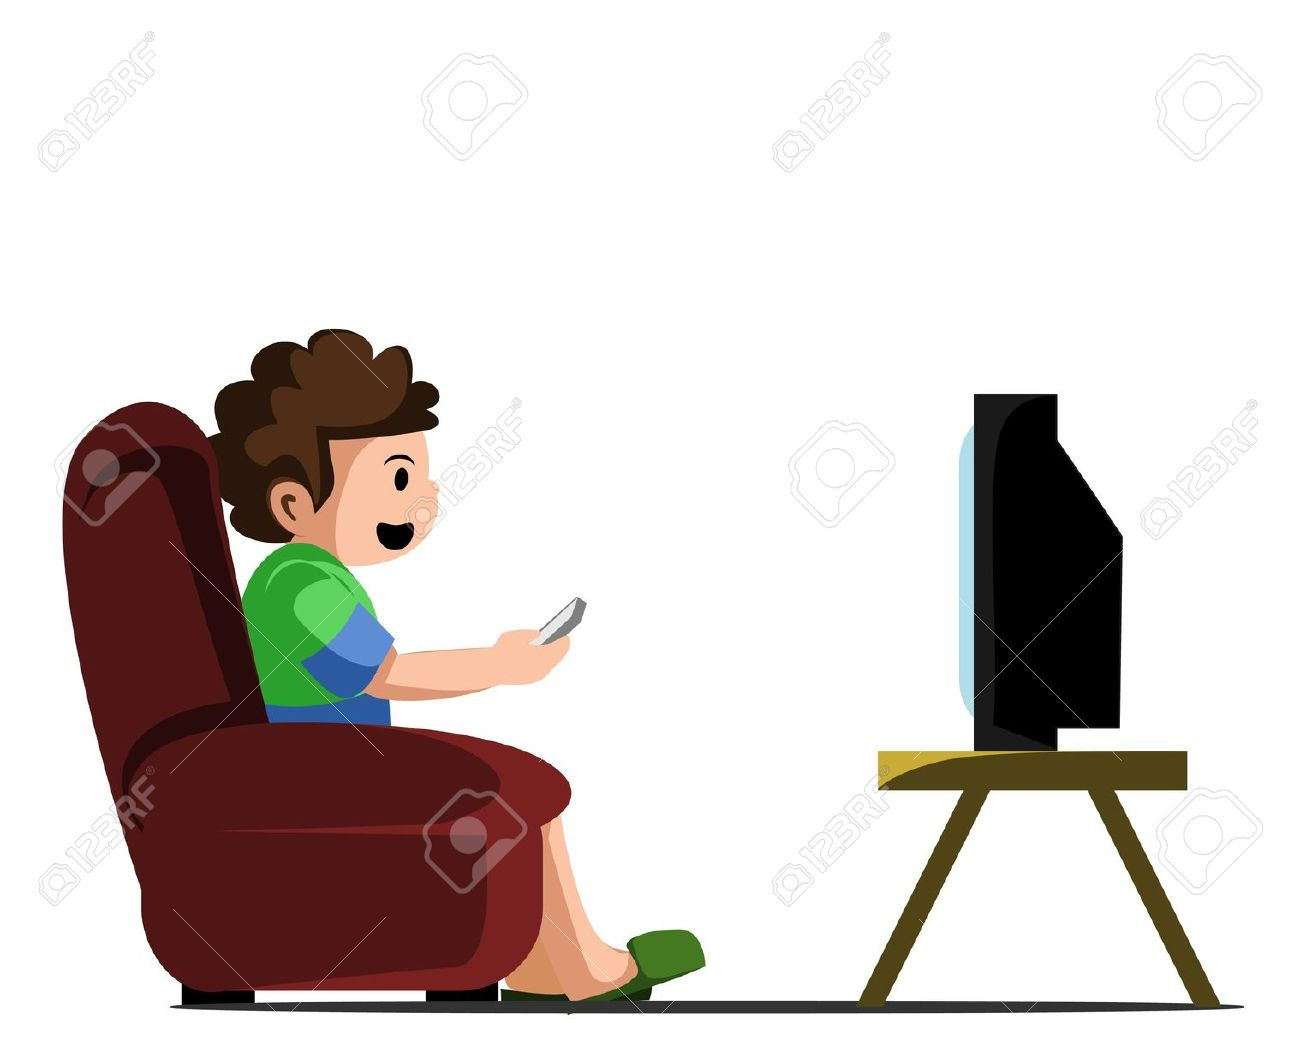 3,677 Watching Television Cliparts, Stock Vector And Royalty Free.